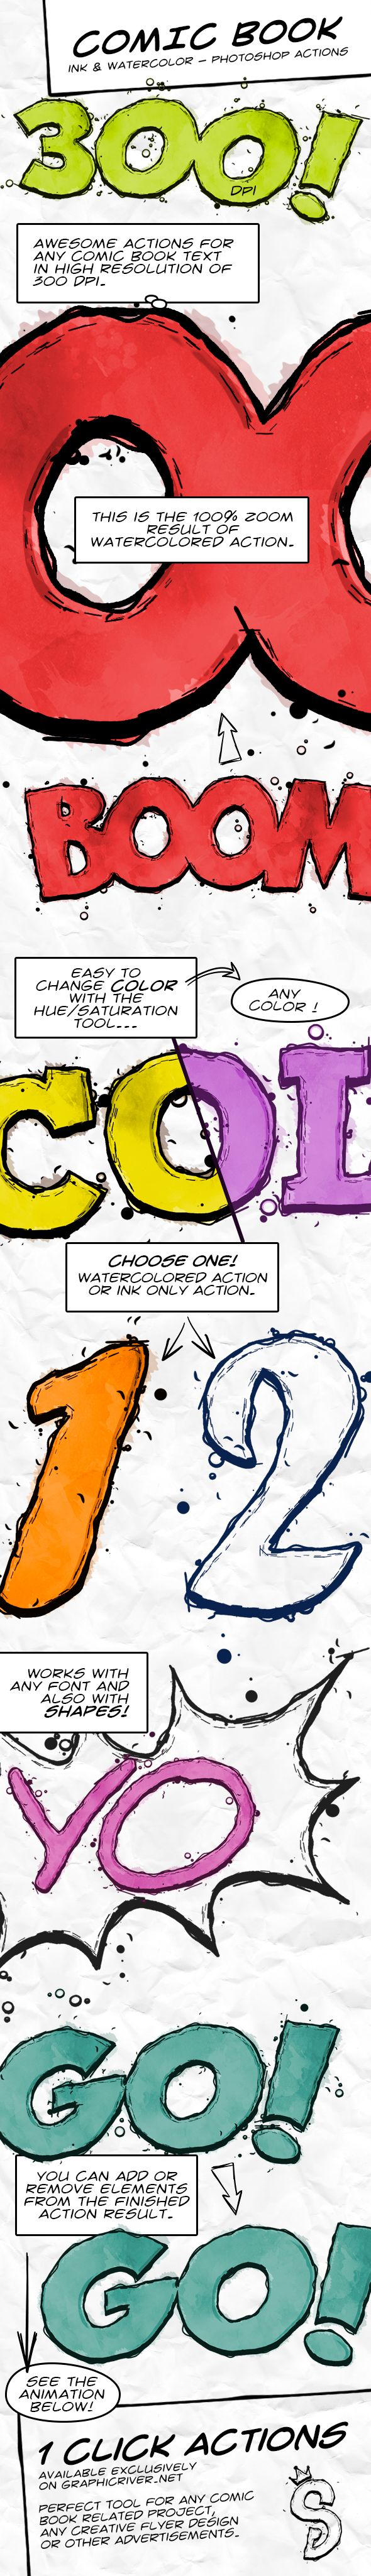 Comic Book Ink Actions  300 DPI — Photoshop ATN #text actions #type actions • Download ➝ https://graphicriver.net/item/comic-book-ink-actions-300-dpi/19705134?ref=pxcr